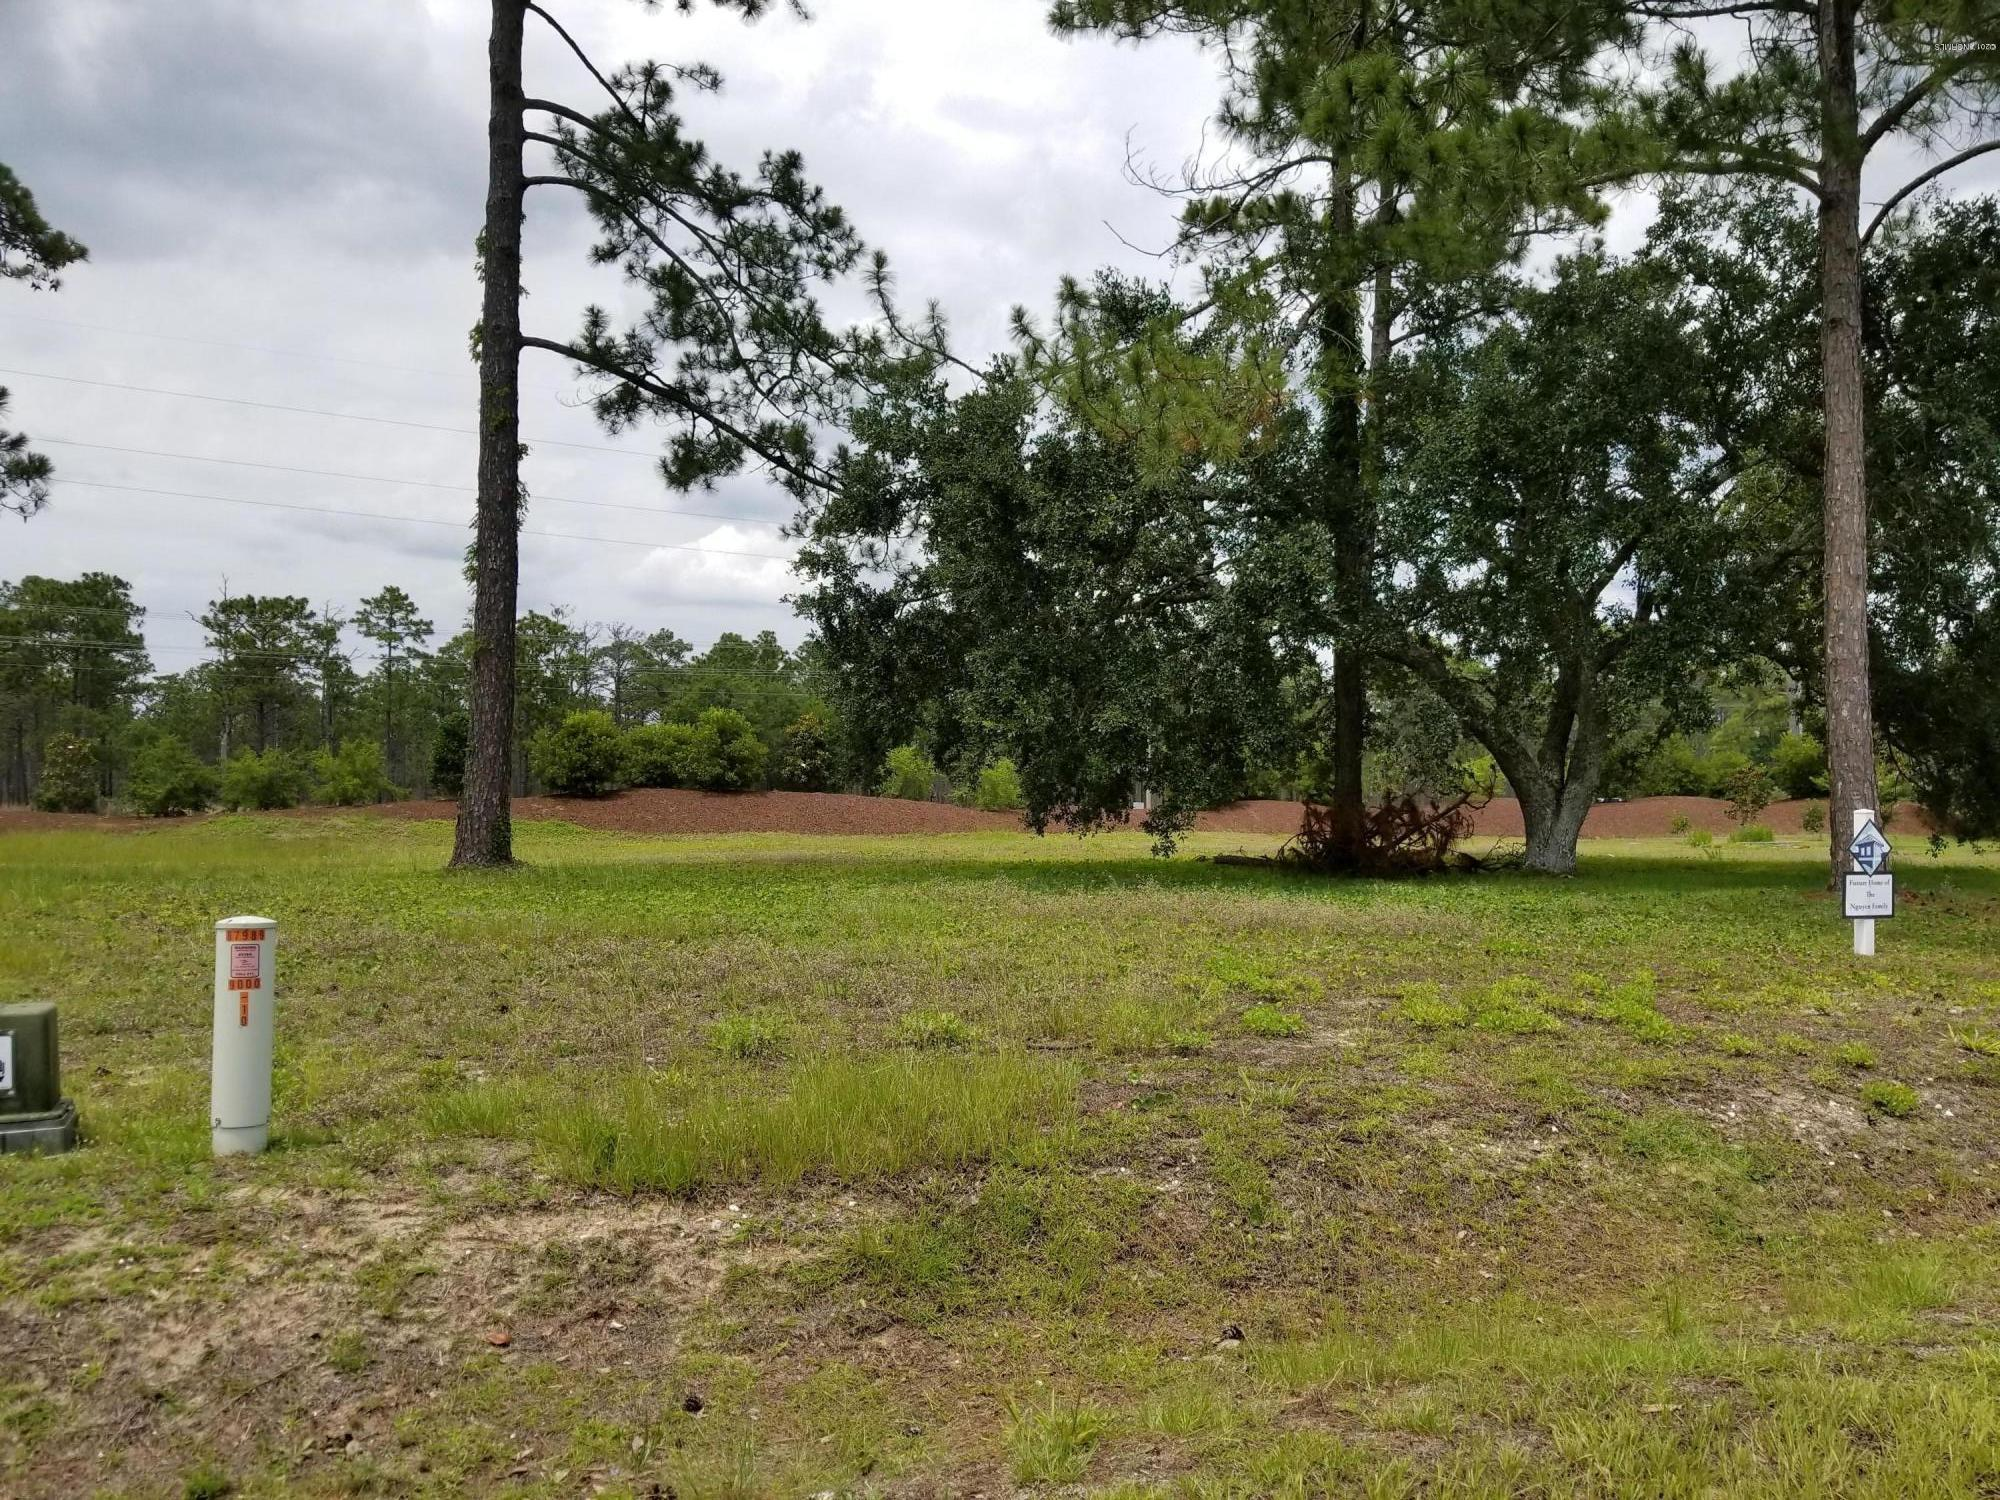 305 Seafarer Street, 100070141, Newport, Vacant Land / Lot,  for sale, Norwood Jackson, Realty World - First Coast Realty